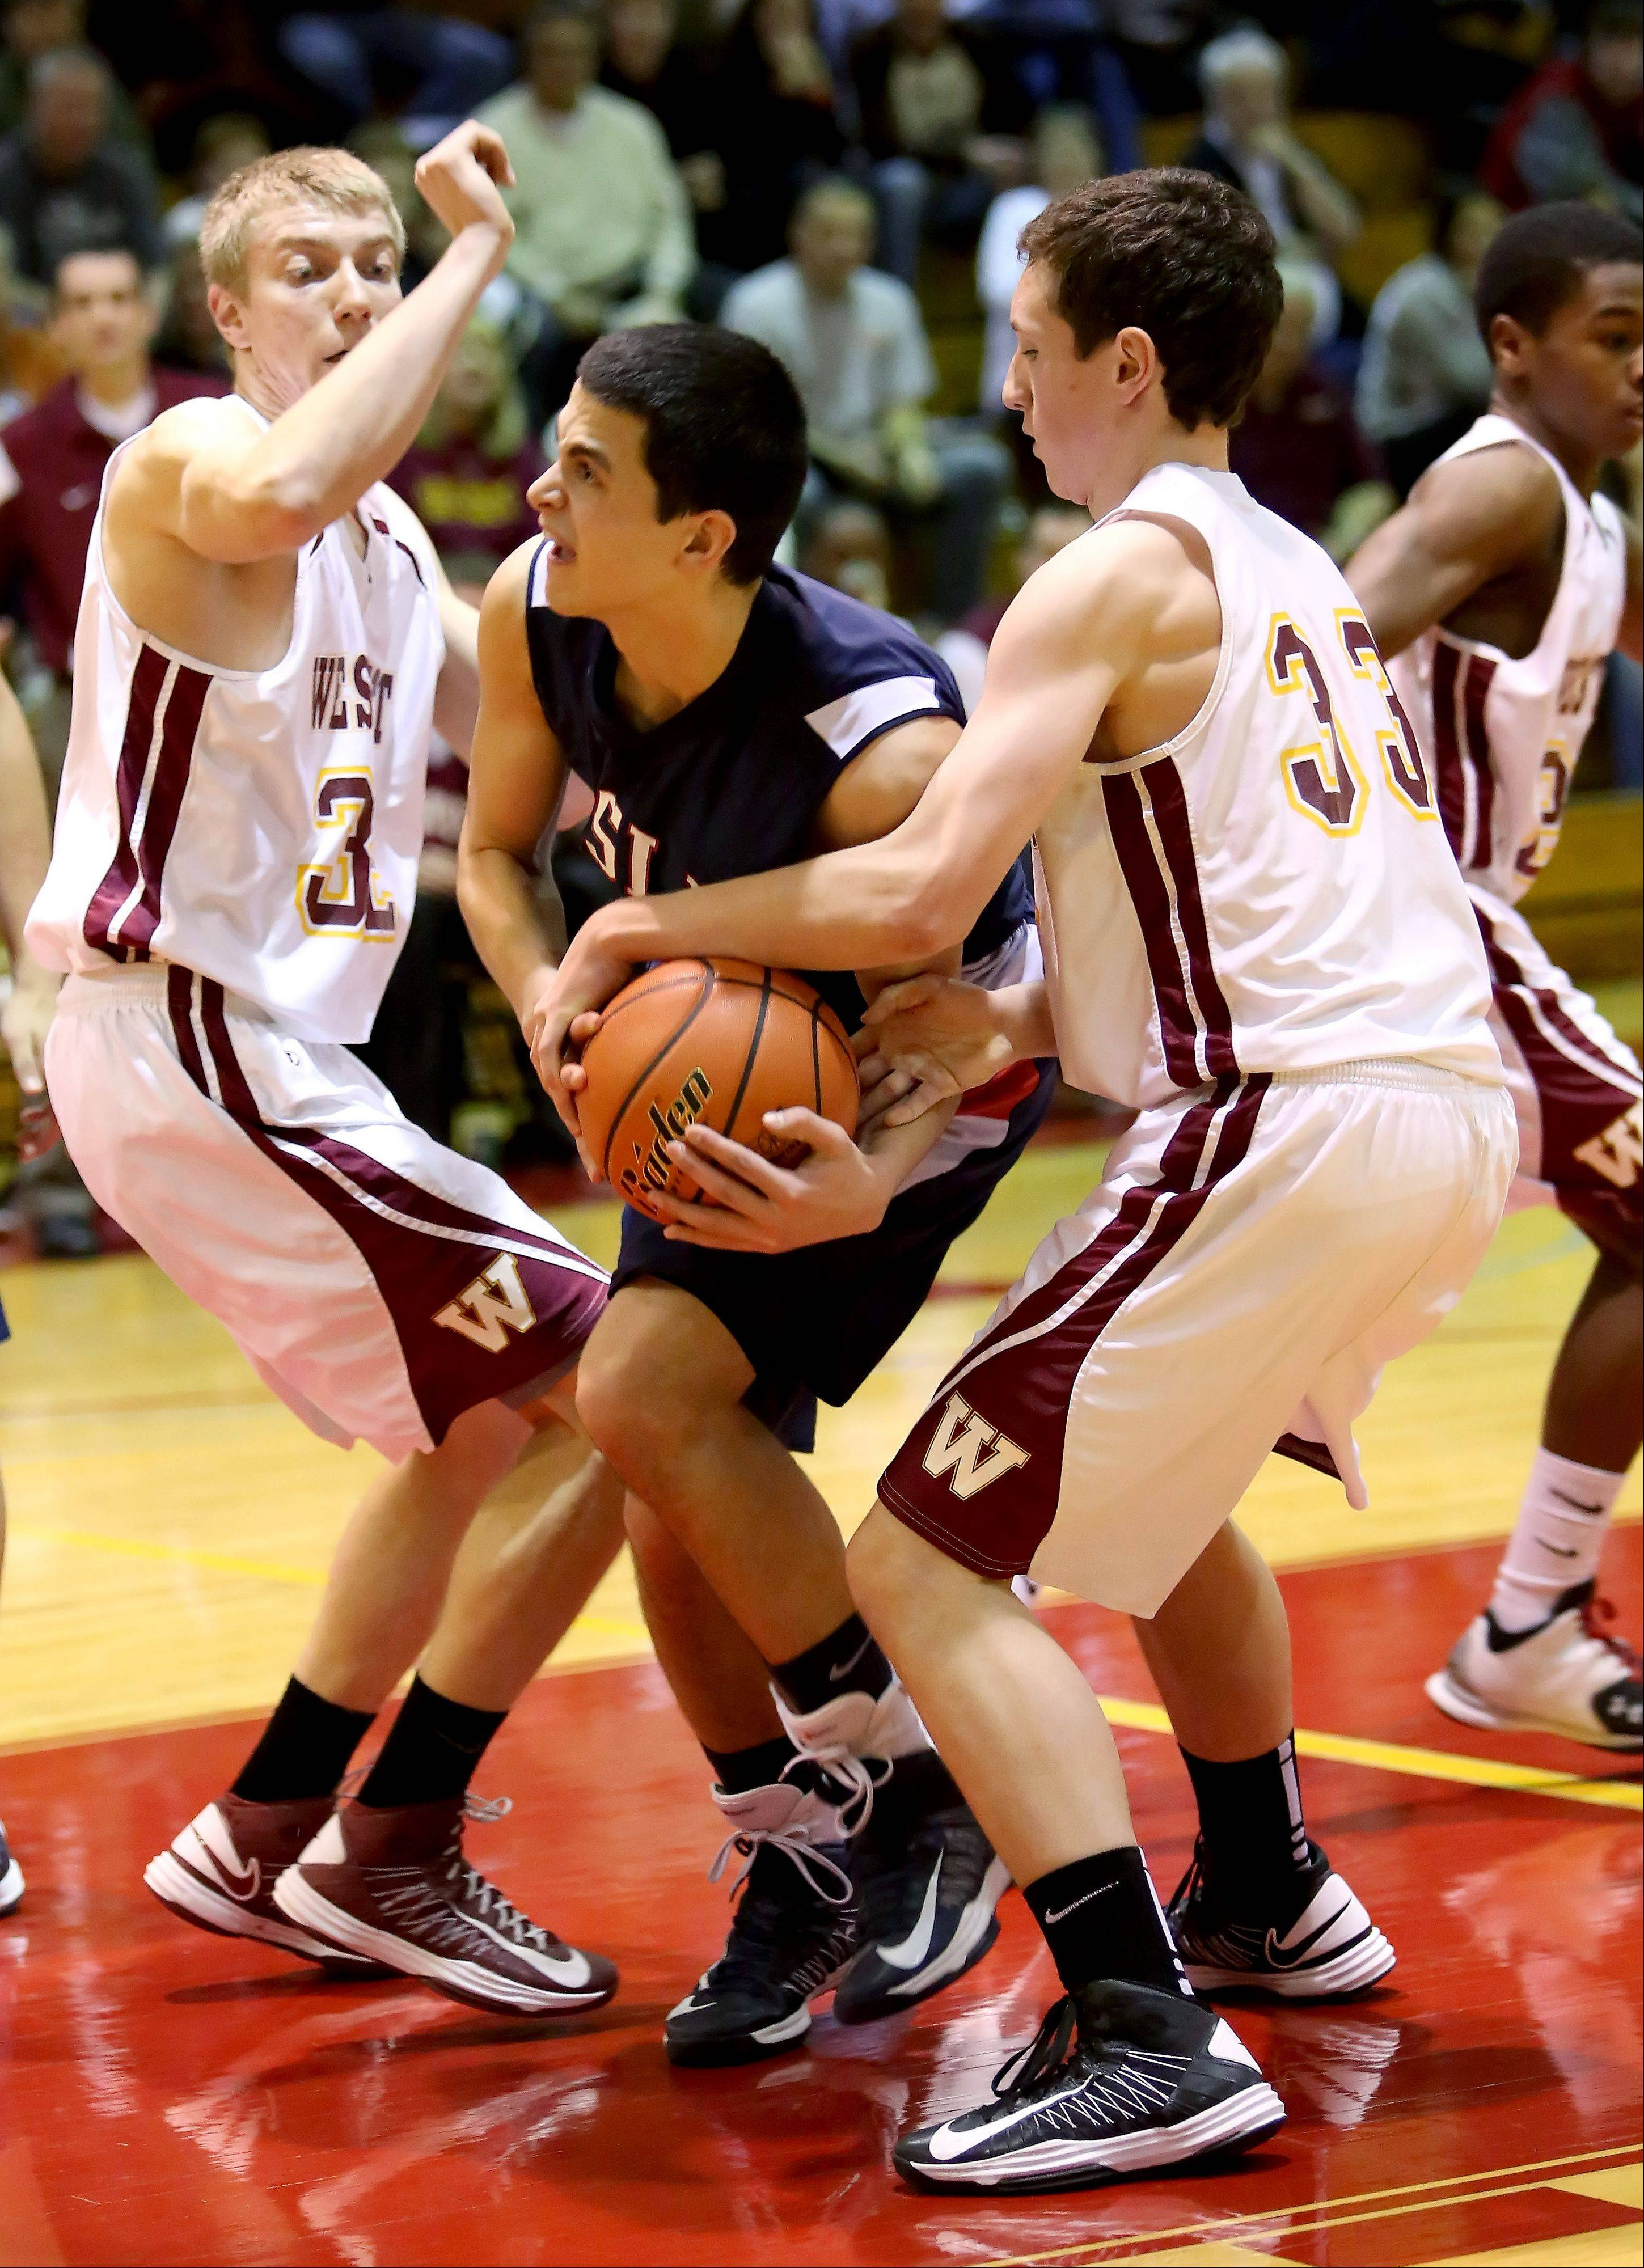 Jerremy Glavanovits of Lisle gets sandwiched in between Jean Pietrzak, left and John Kelly, right, of Westmont in Class 2A regional boys basketball on Monday in Westmont.